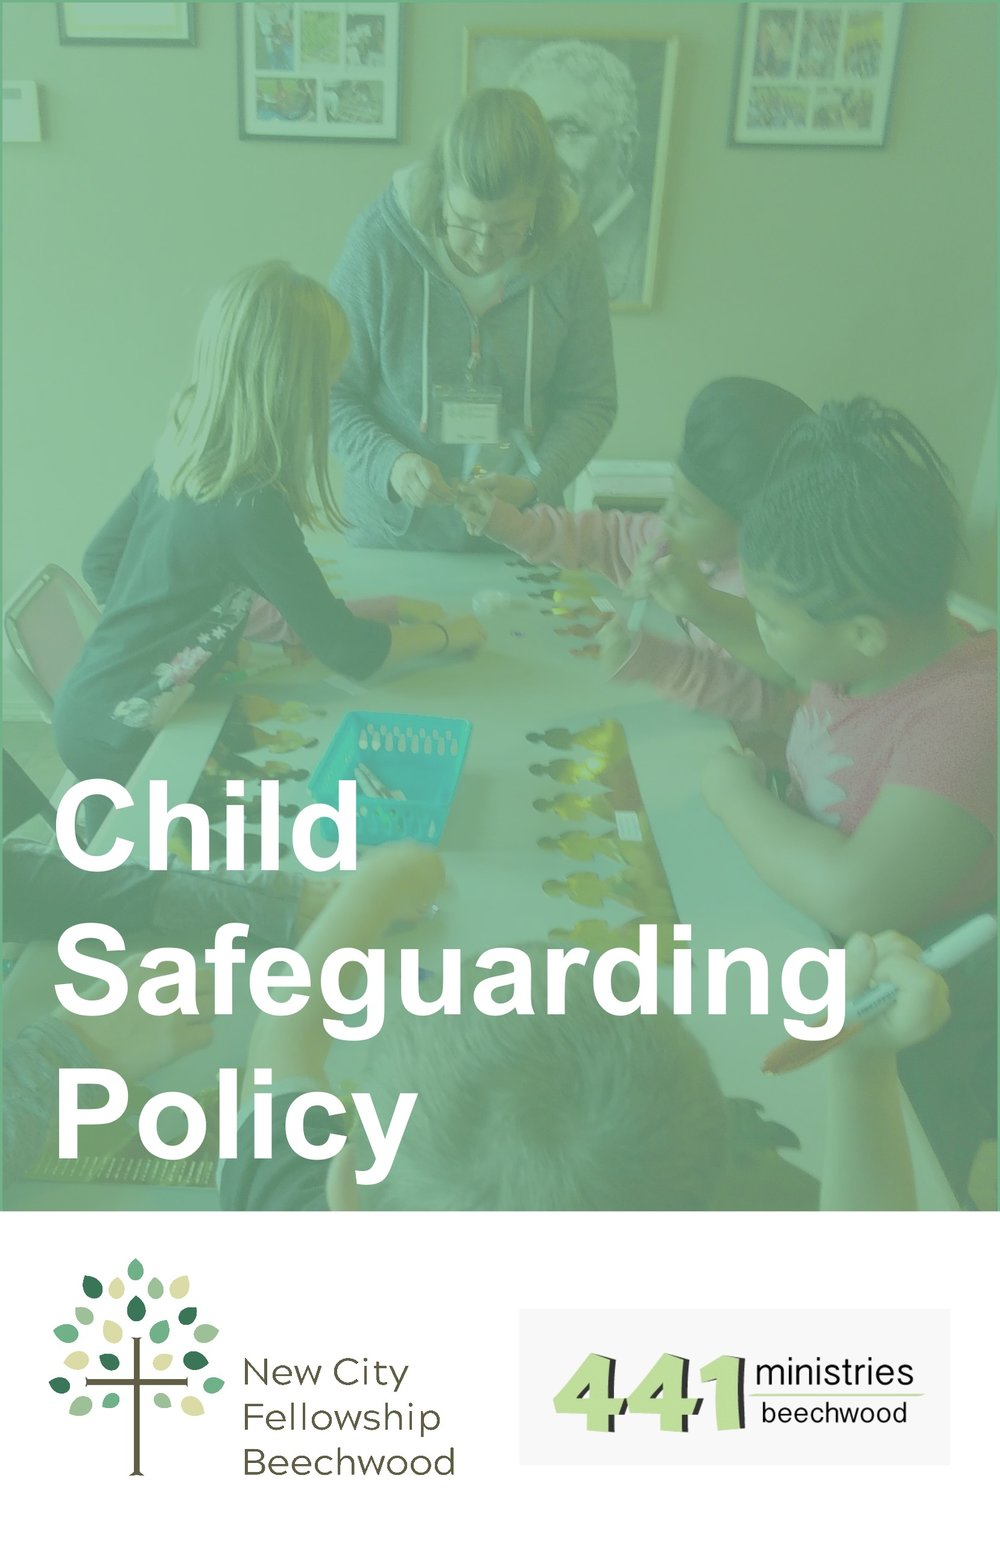 Child Safety Policy Image.jpg